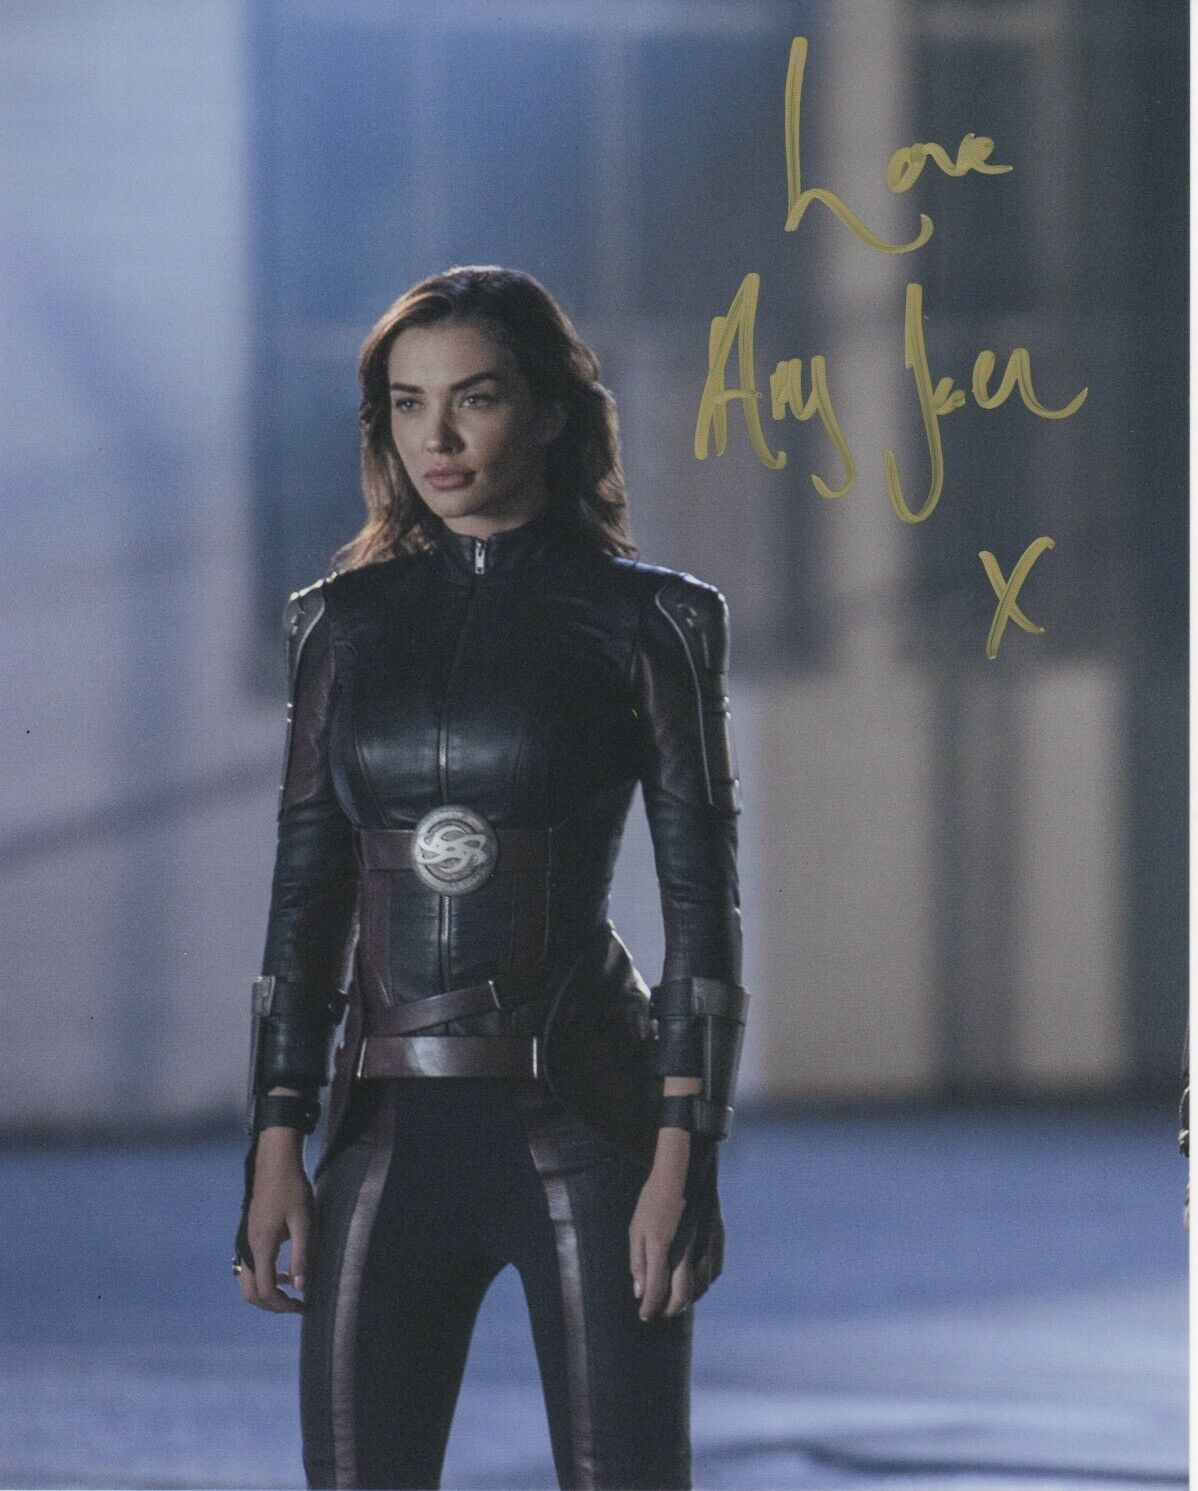 Amy Jackson Supergirl Signed Autograph 8x10 Photo #7 - Outlaw Hobbies Authentic Autographs